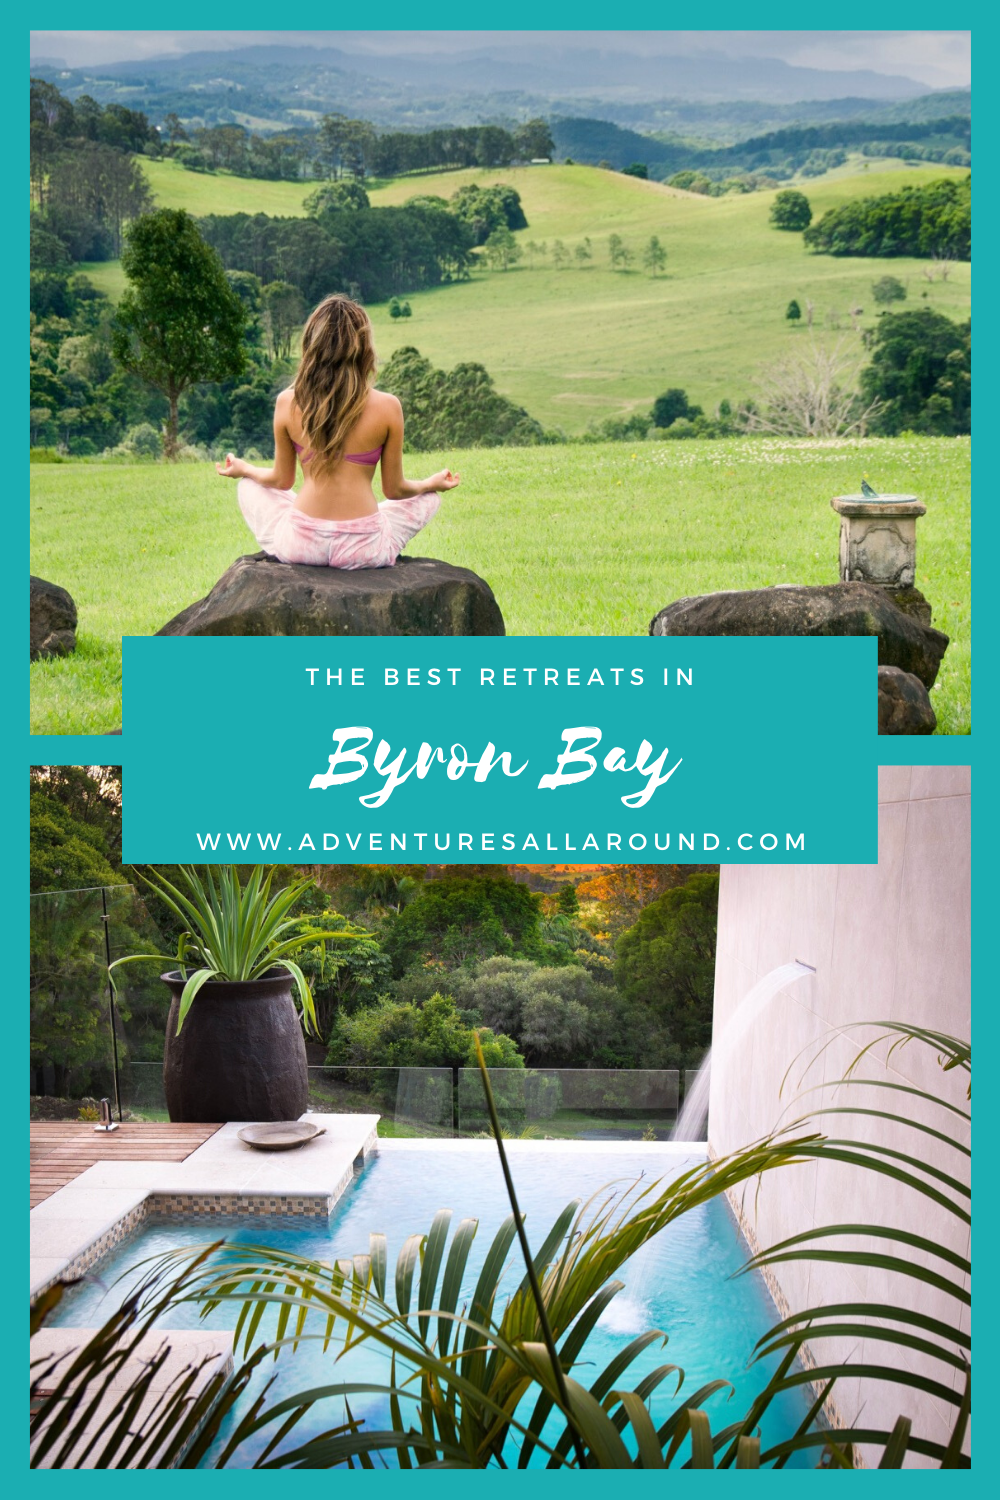 Whether you're craving a spiritual, active, or blissfully relaxing Byron Bay retreat, here are 11 of the best places to slip away from the world. #ByronBay #australia #newsouthwales #spiritualtravel #traveltips